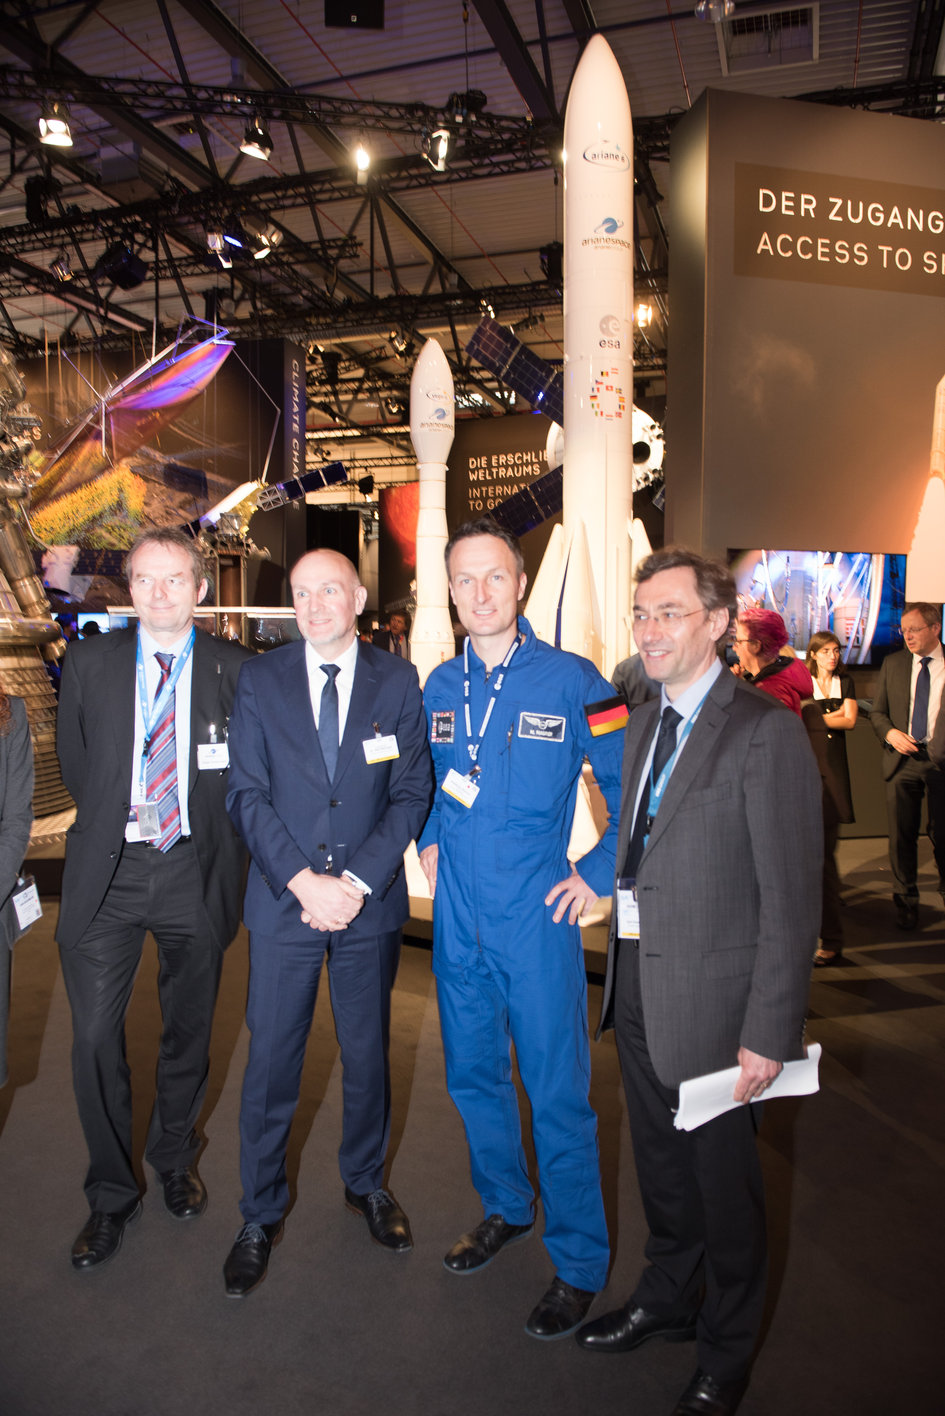 Visit of Dr Rolf Bosinger to the Space Pavilion at ILA Berlin